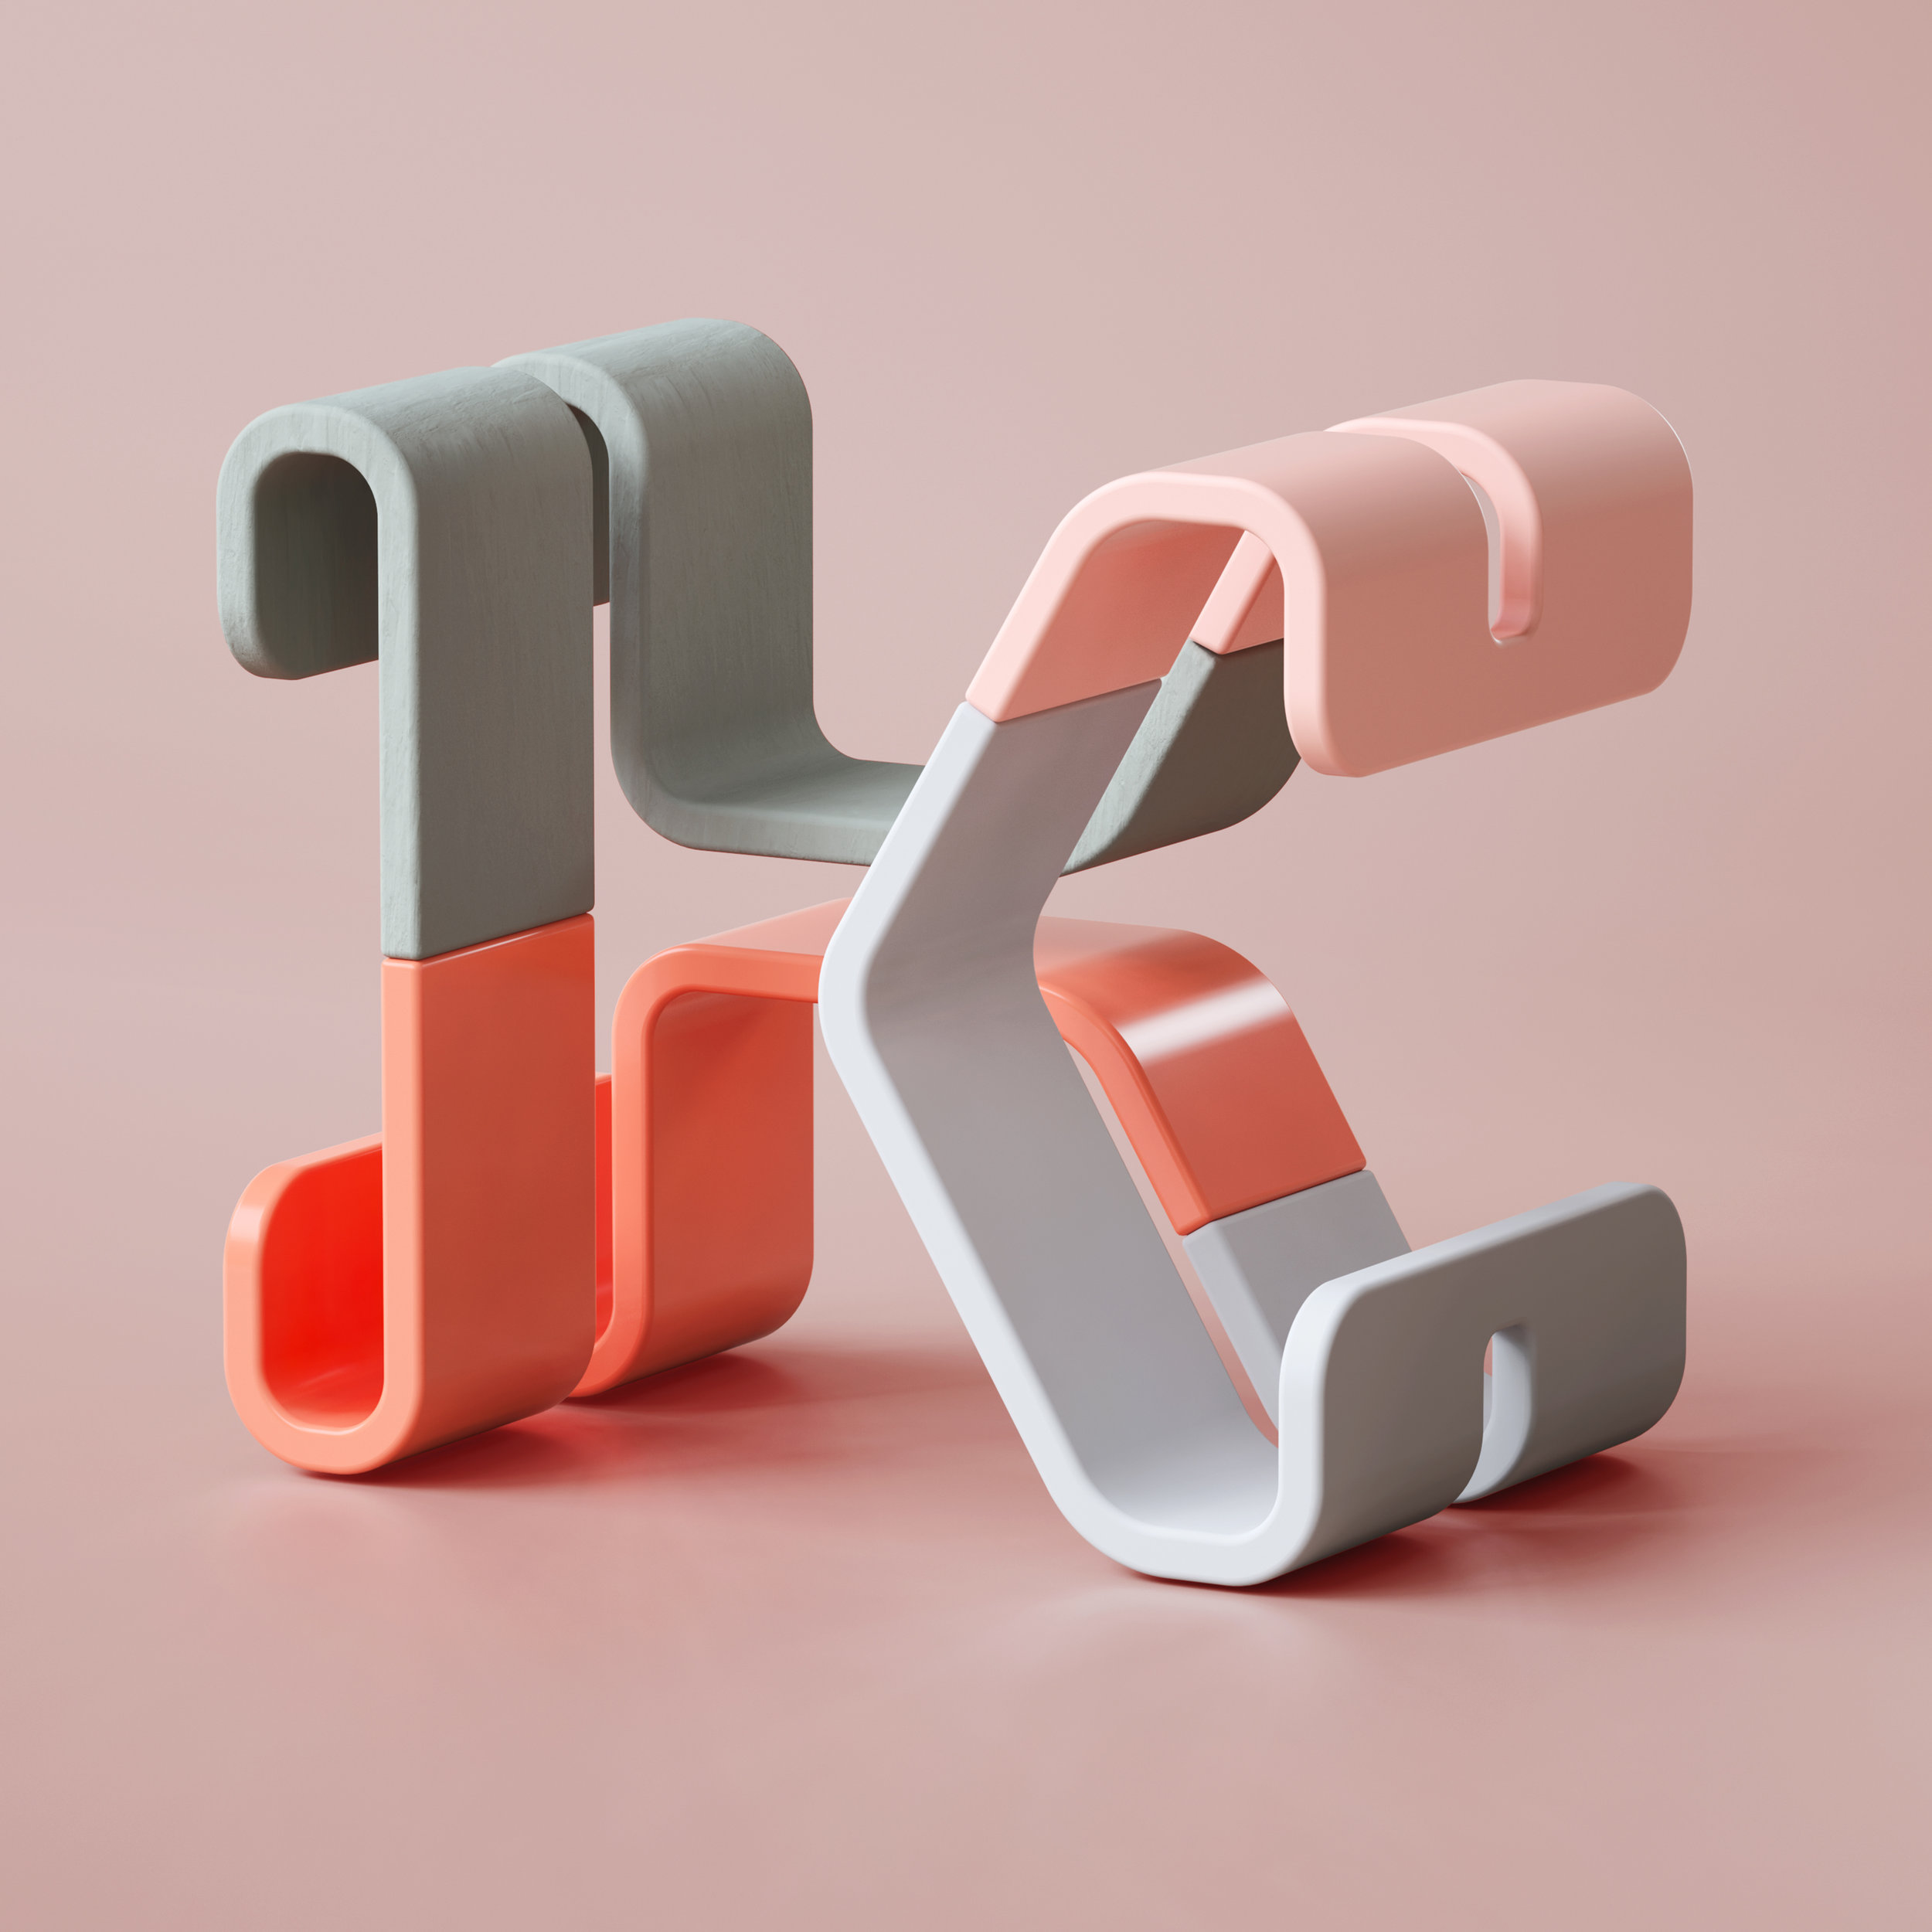 36 Days of Type 2019 - 3D Typeform letter K visual.